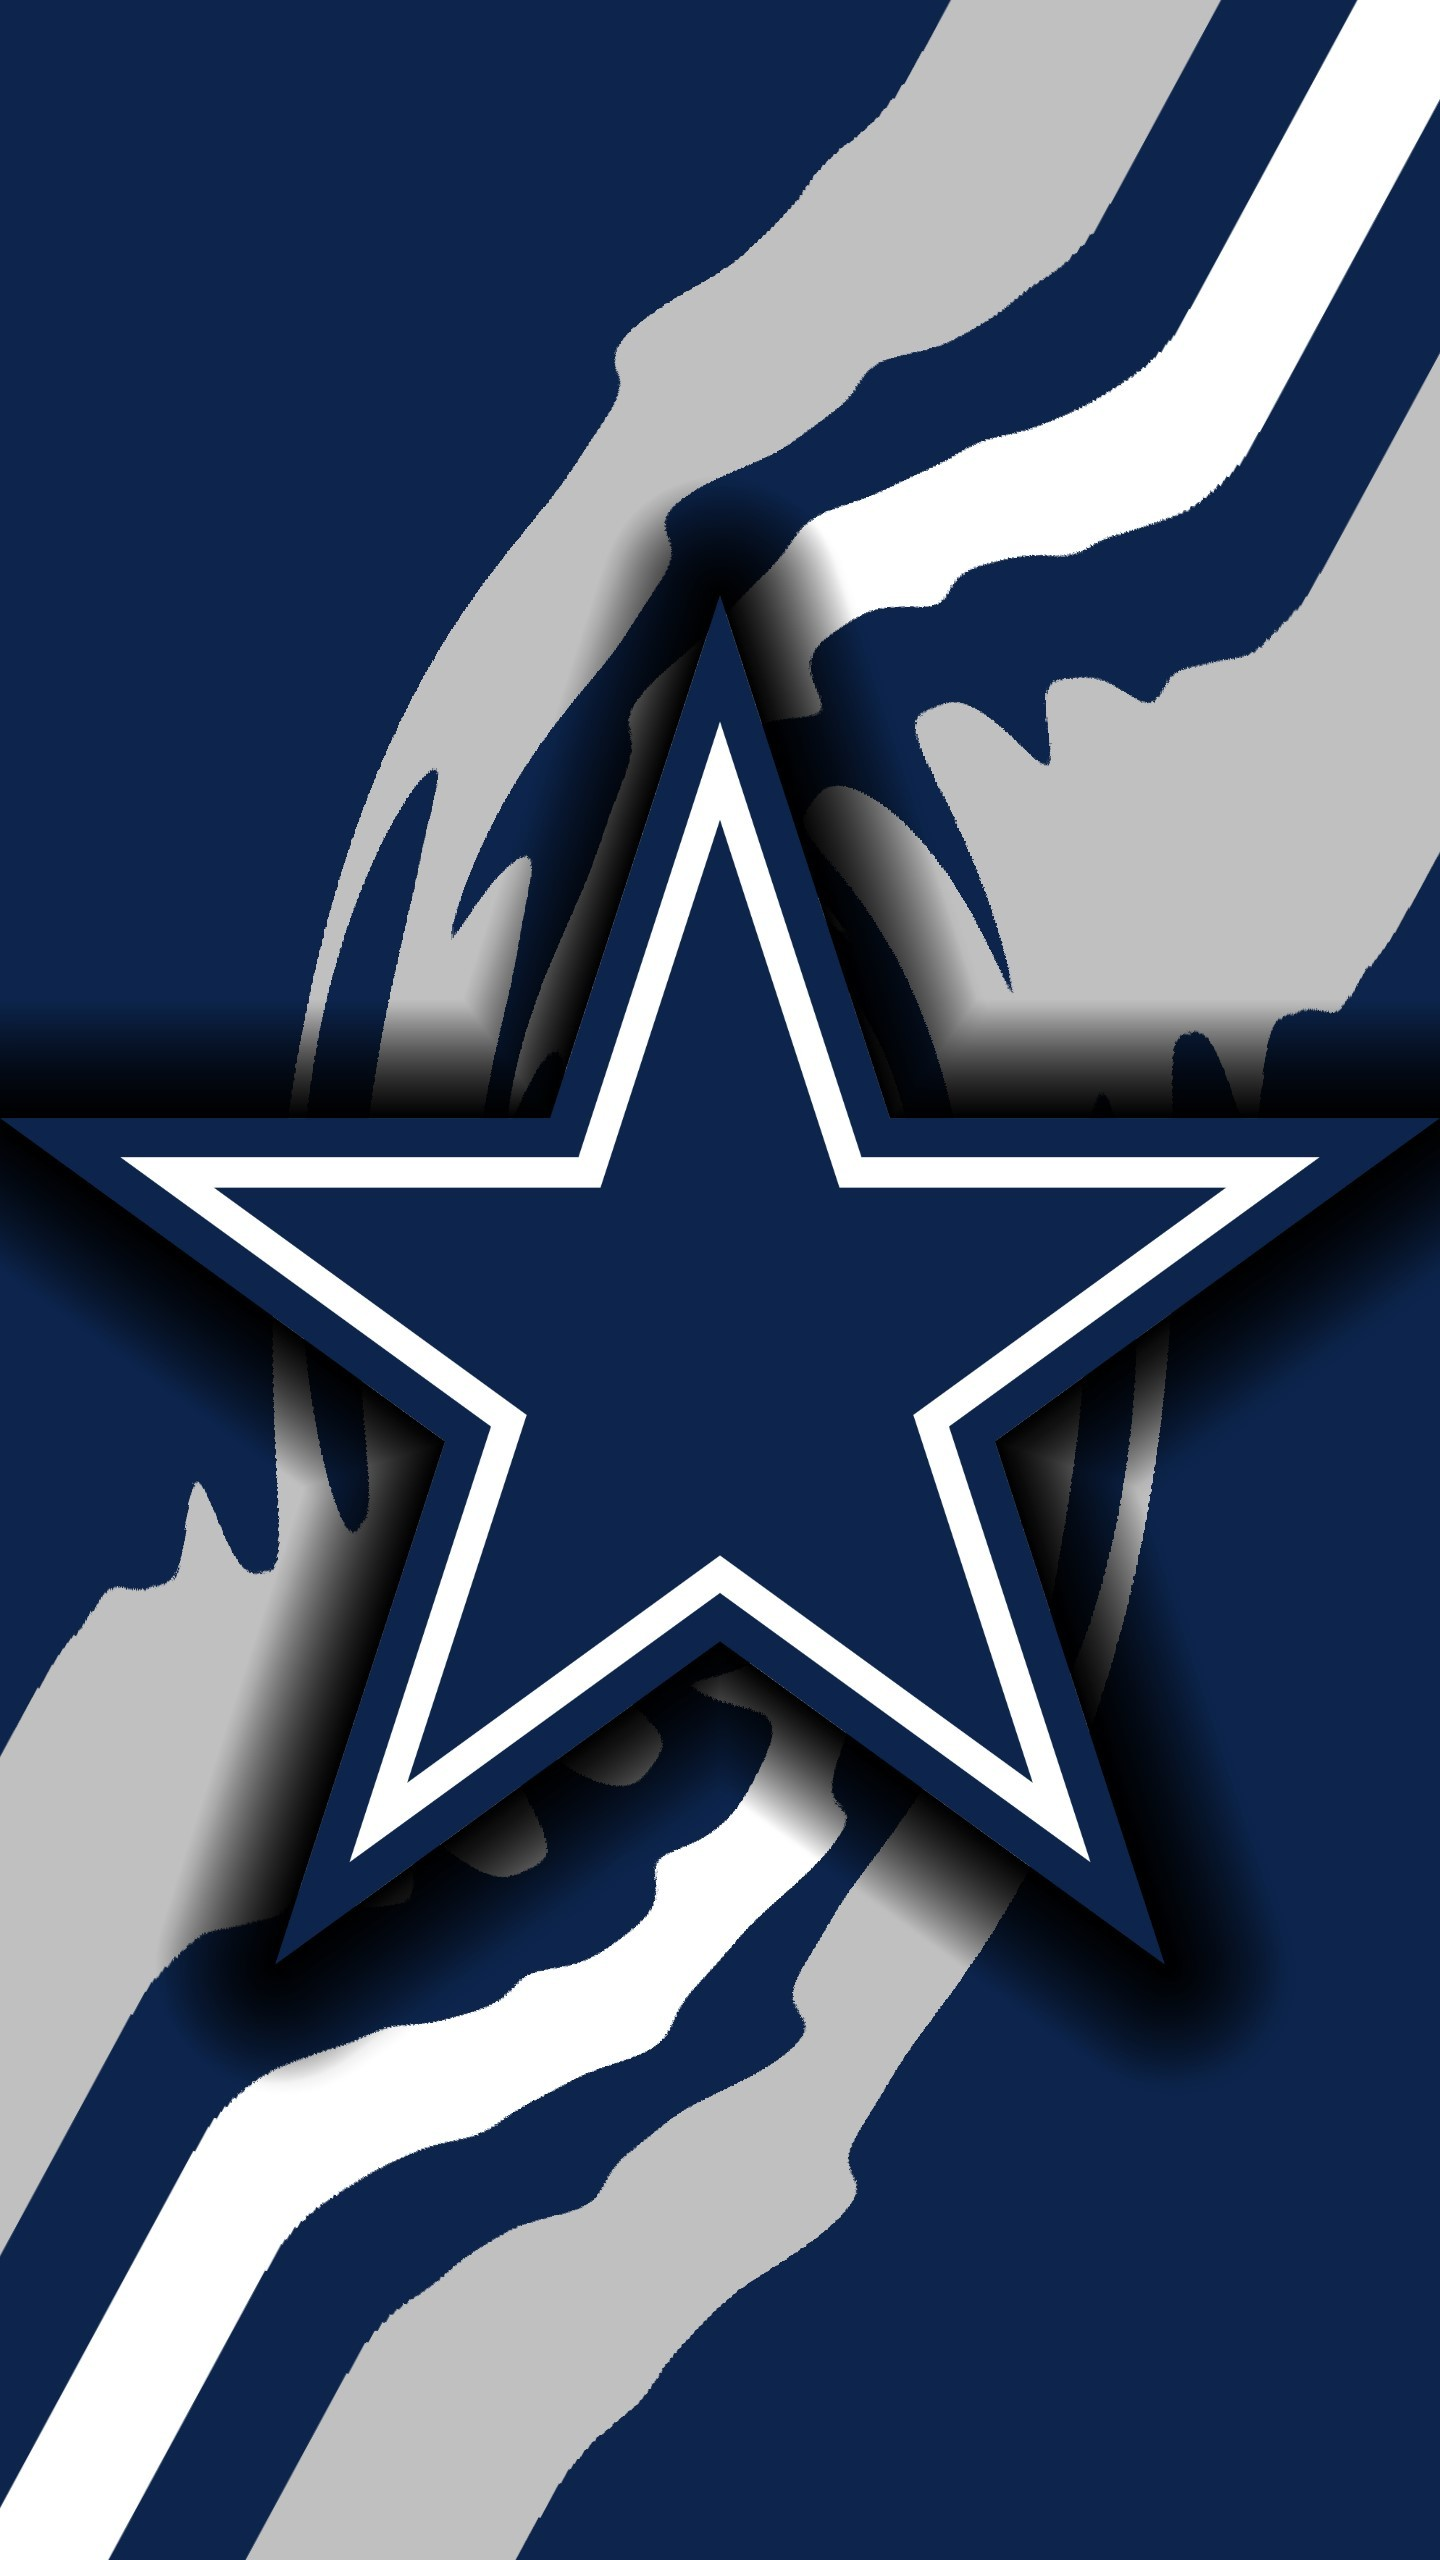 Dallas cowboys 2018 wallpapers 55 images 1440x2560 download dallas cowboys wallpapers to your cell phone cowboys download 1920x1080 raiders schedule voltagebd Gallery